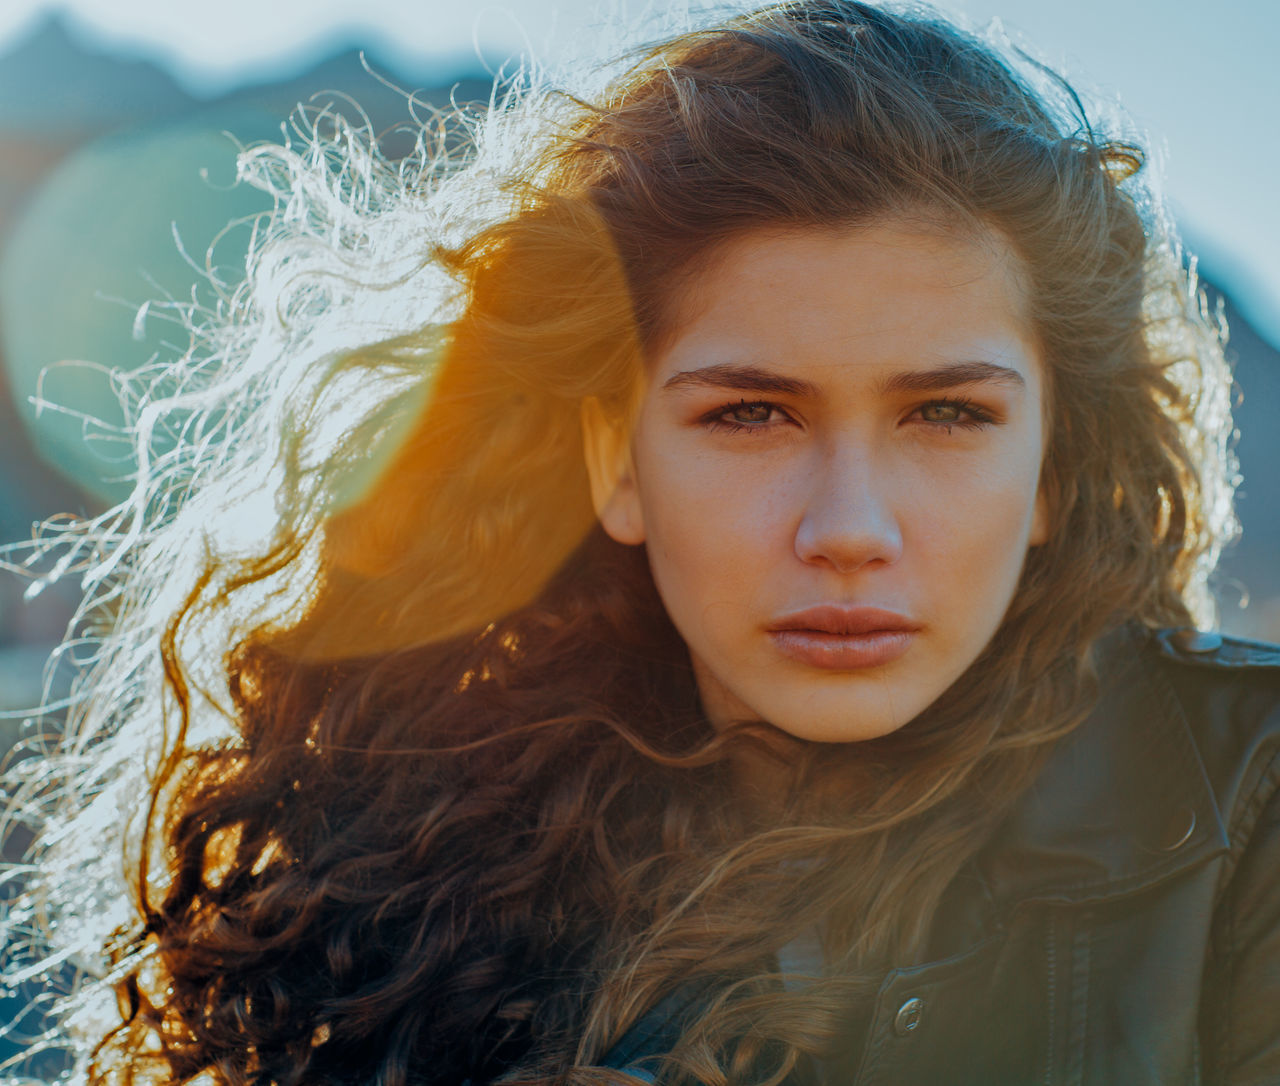 Beautiful stock photos of augen, young adult, fashion, one young woman only, portrait